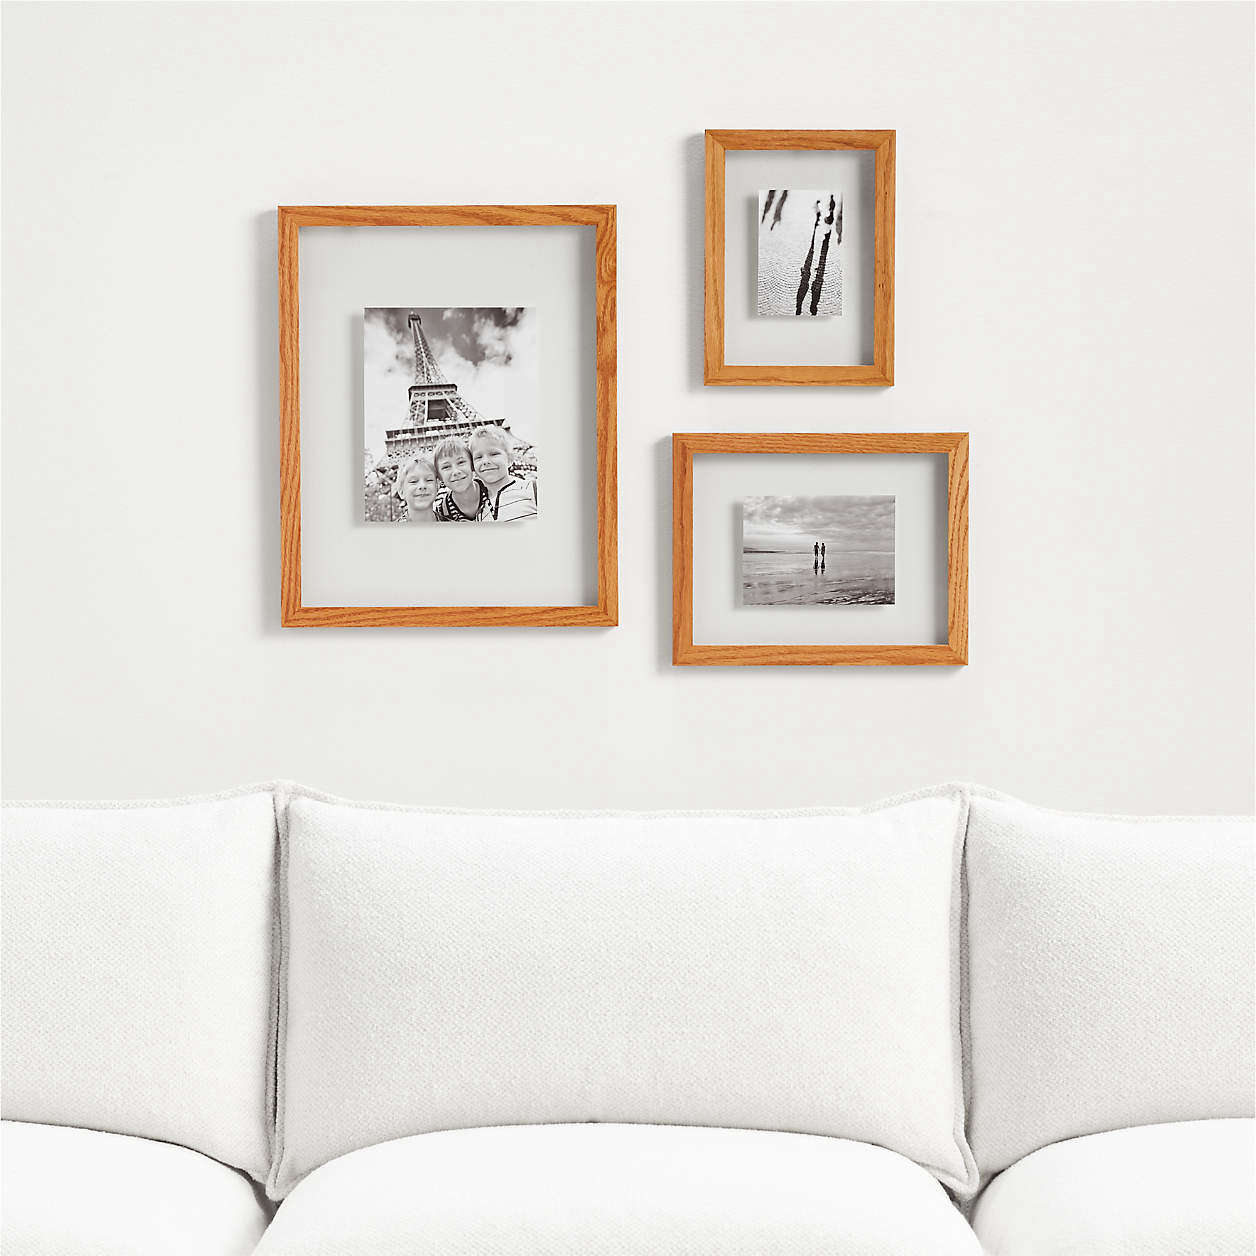 The Carlota Floating Frames range from $49.95 to $79.95 at Crate & Barrel.